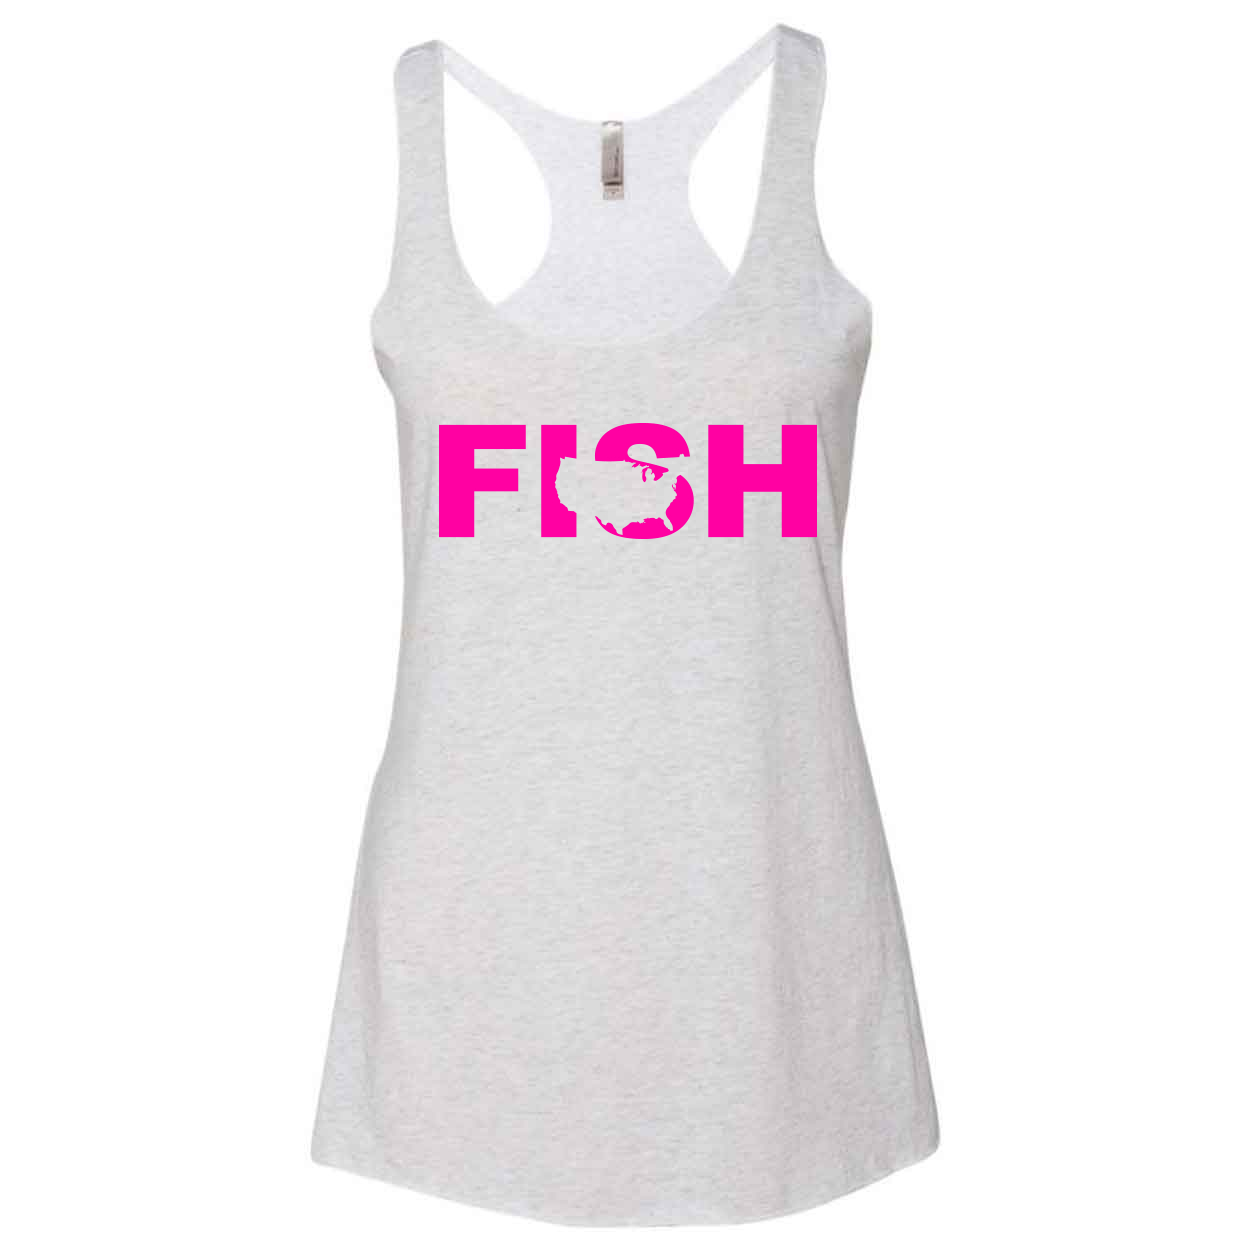 Fish United States Classic Women's Ultra Thin Tank Top Heather White (Pink Logo)